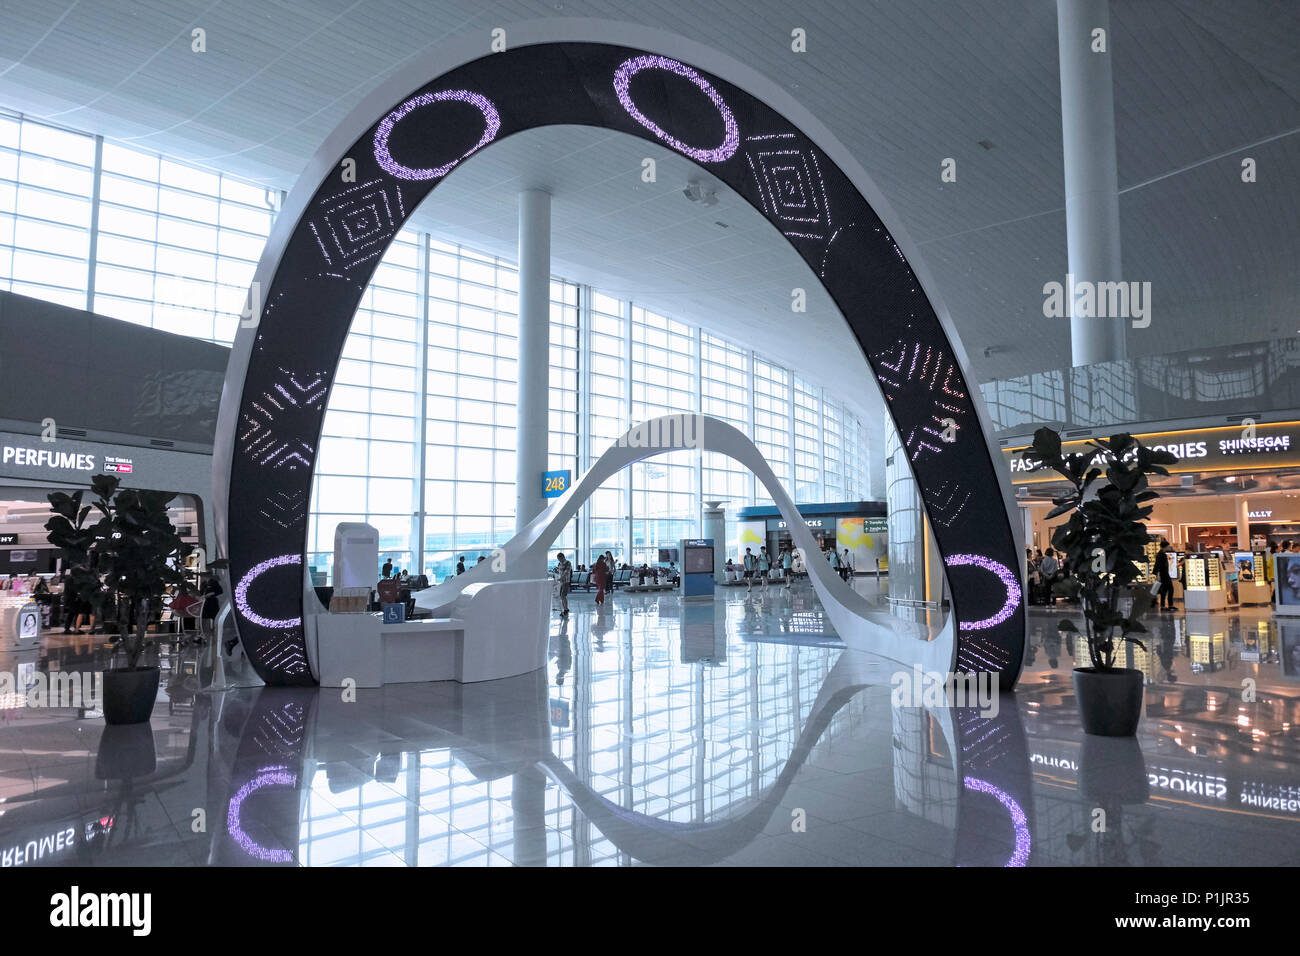 b1a62b4783c A loop-shape structure that plays multiple roles of media art at the Duty  free shops ...